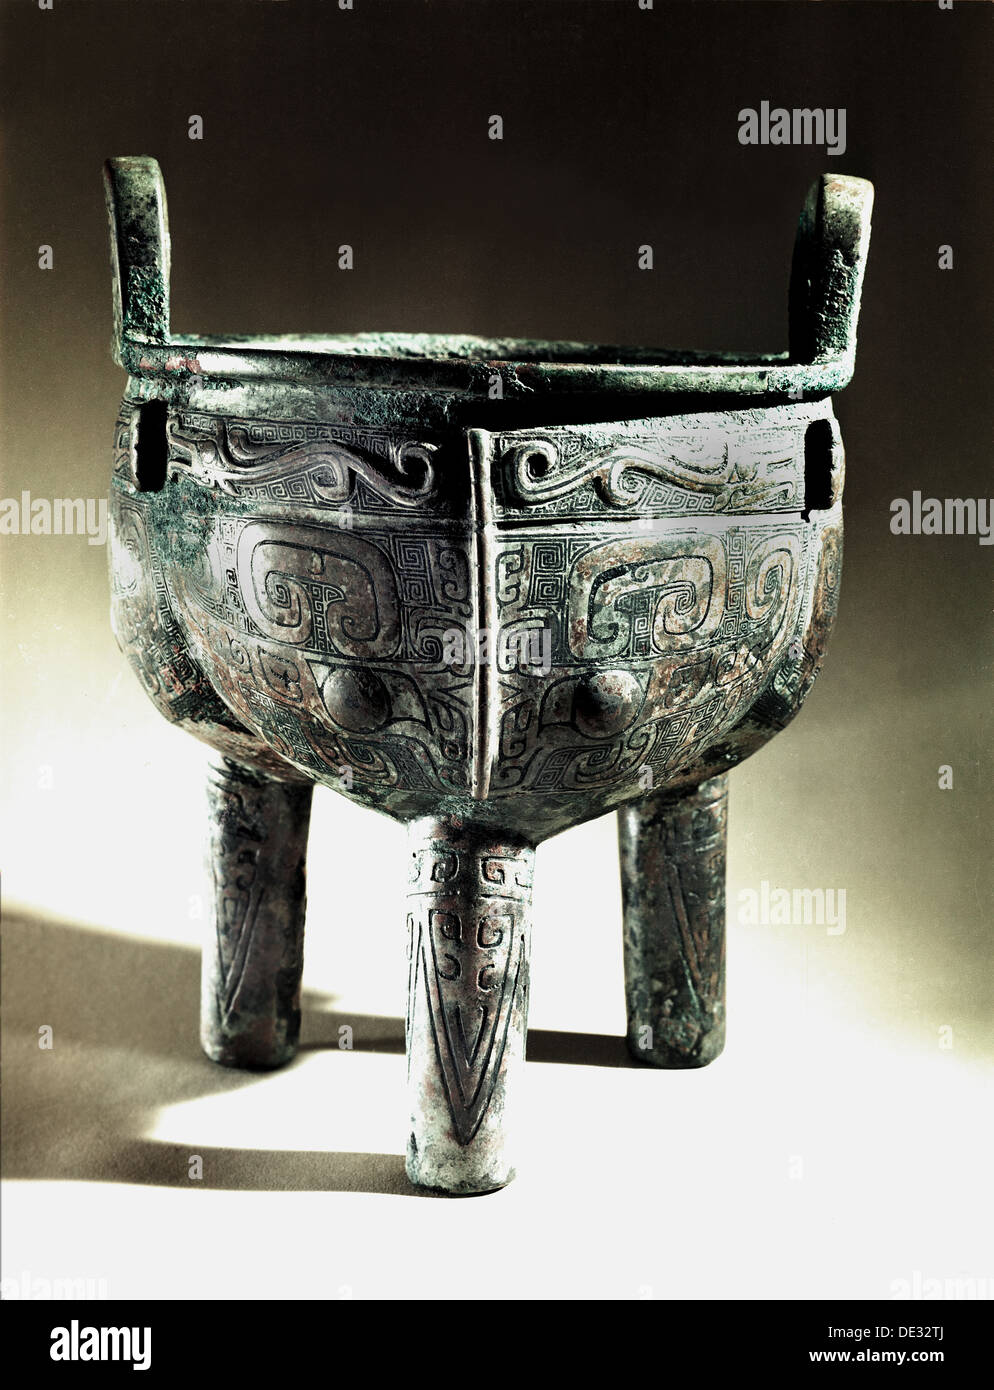 Li ting cauldron decorated with stylised dragons and tao-tieh masks. - Stock Image